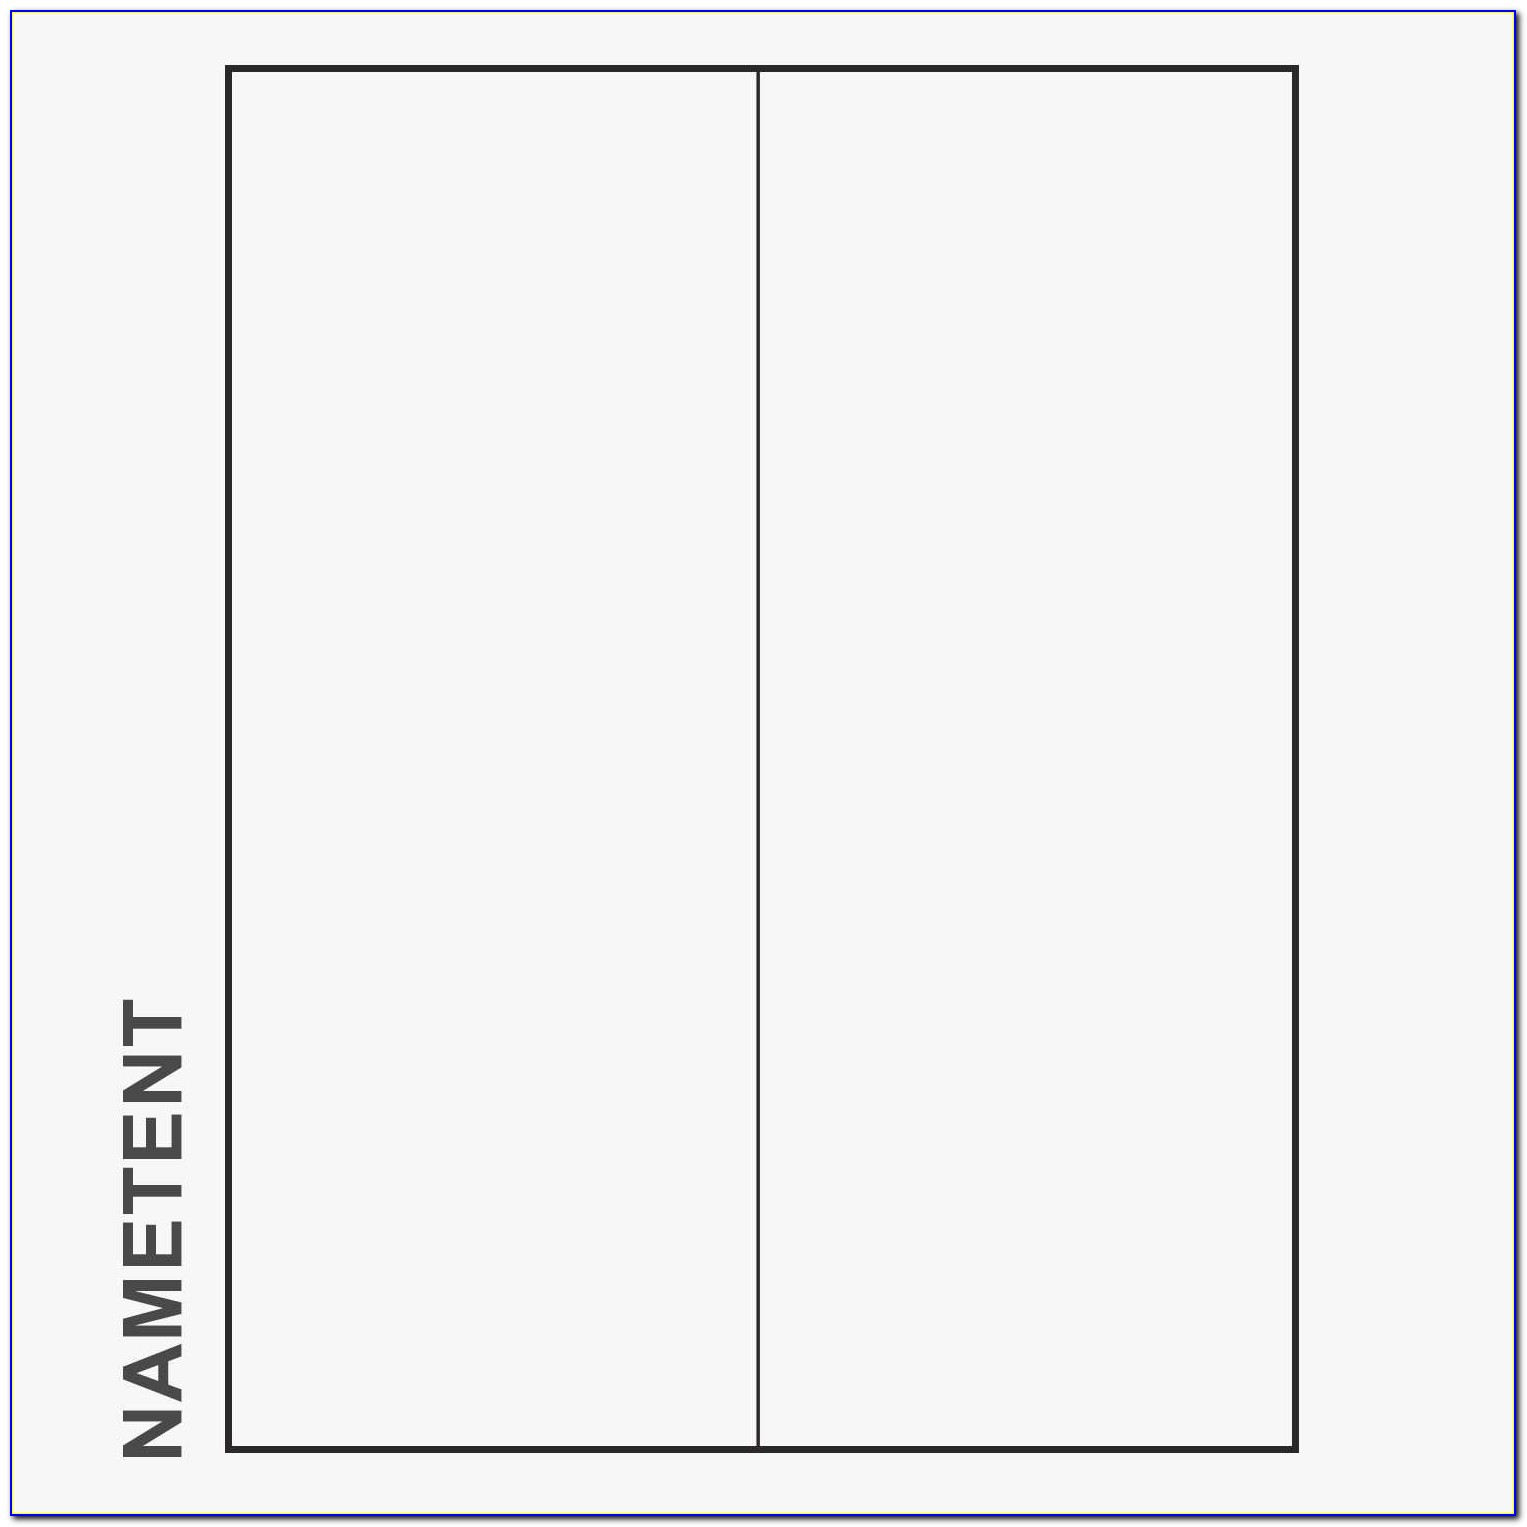 Avery Large Table Tent Template Awesome Tent Card Template Unique 31 New Gallery Avery Tent Cards